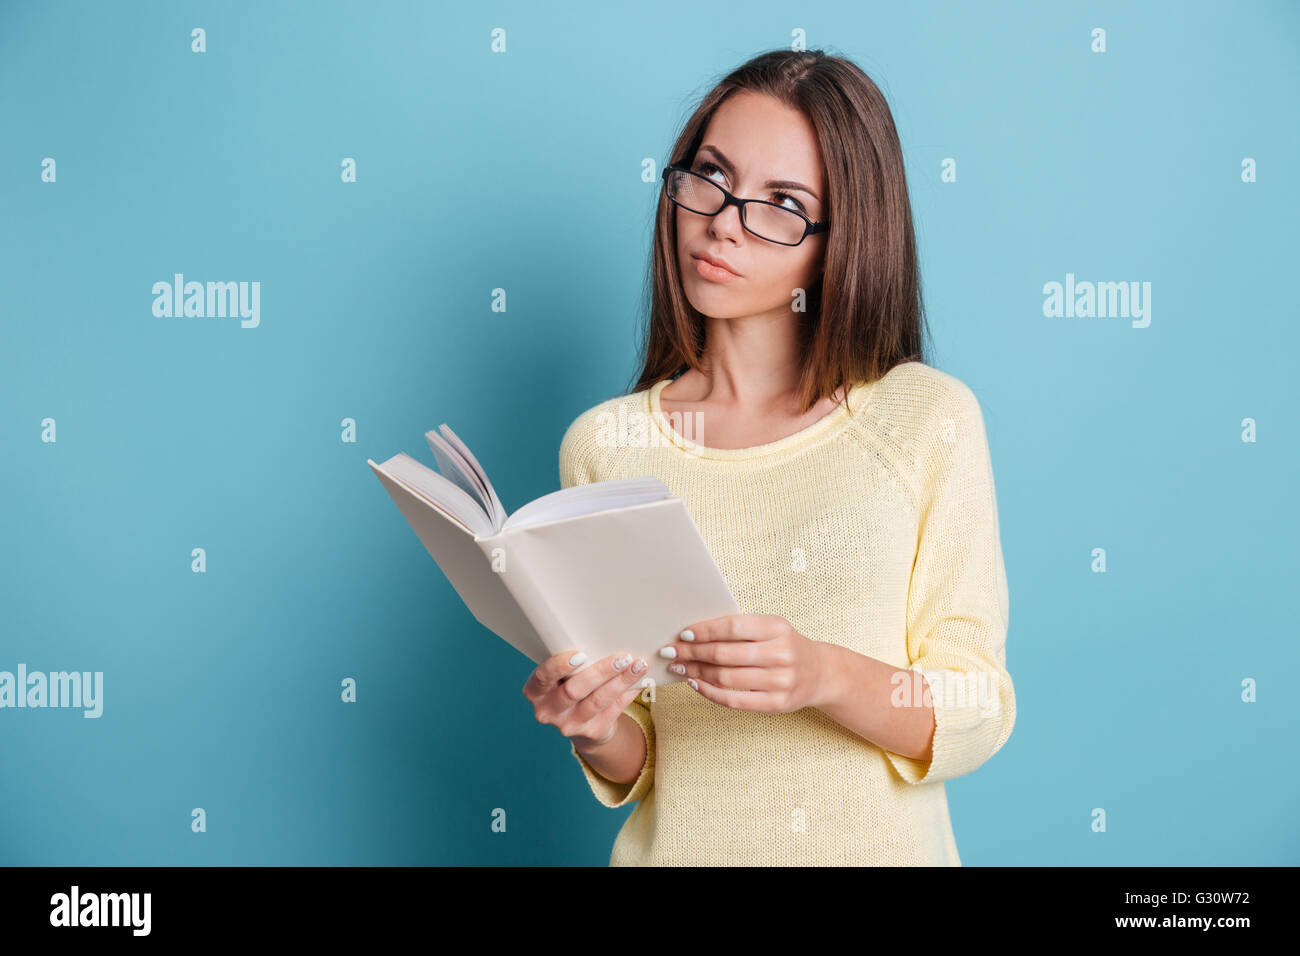 Pensive smart girl thinking about something and holding book isolated on the blue background - Stock Image